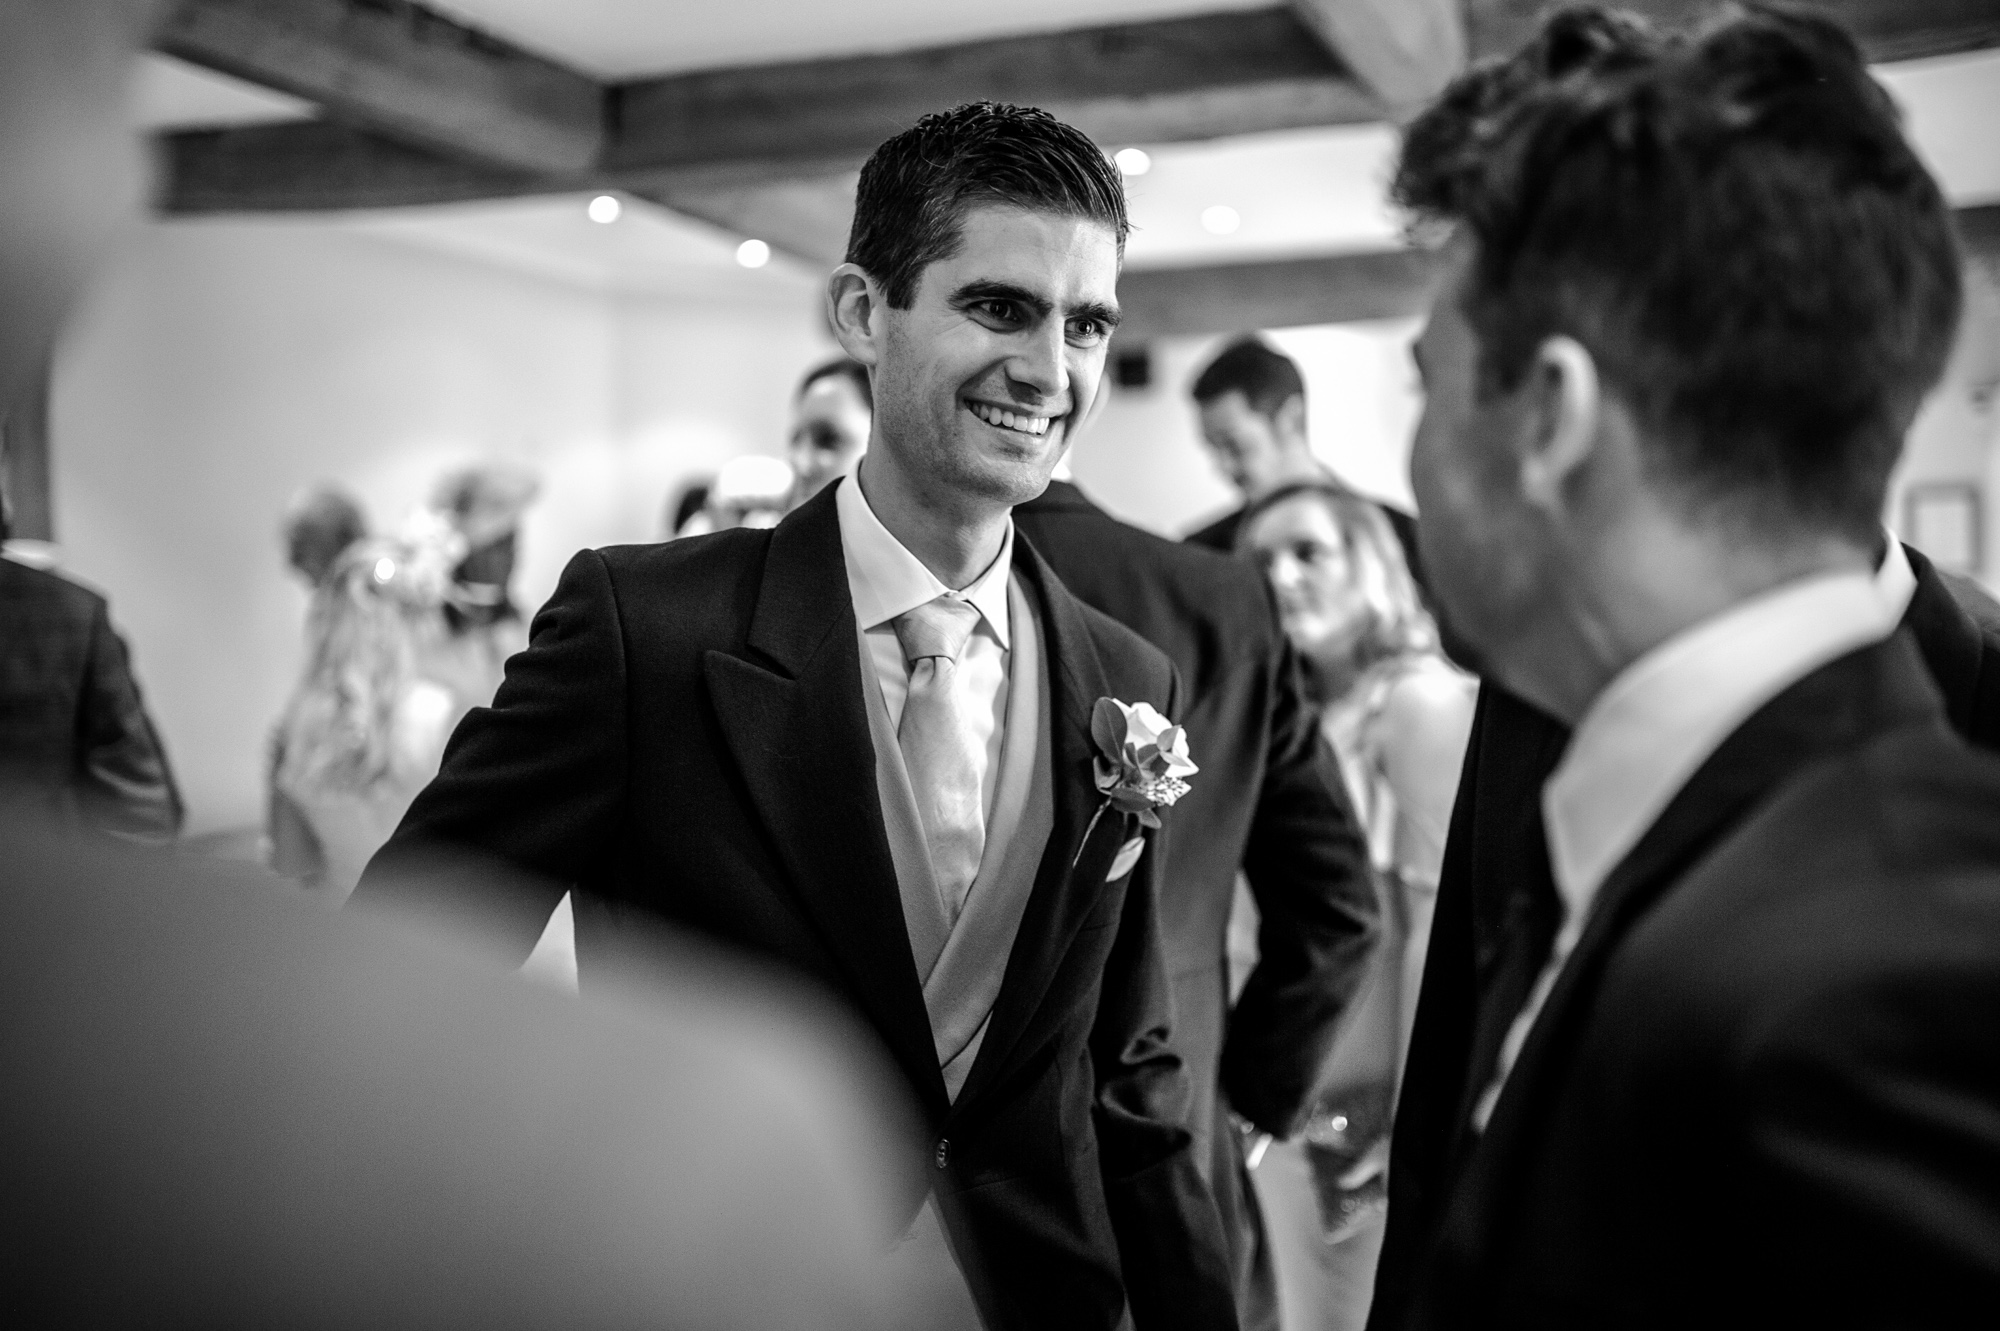 Notley Barn Wedding 26.10.18 16.jpg